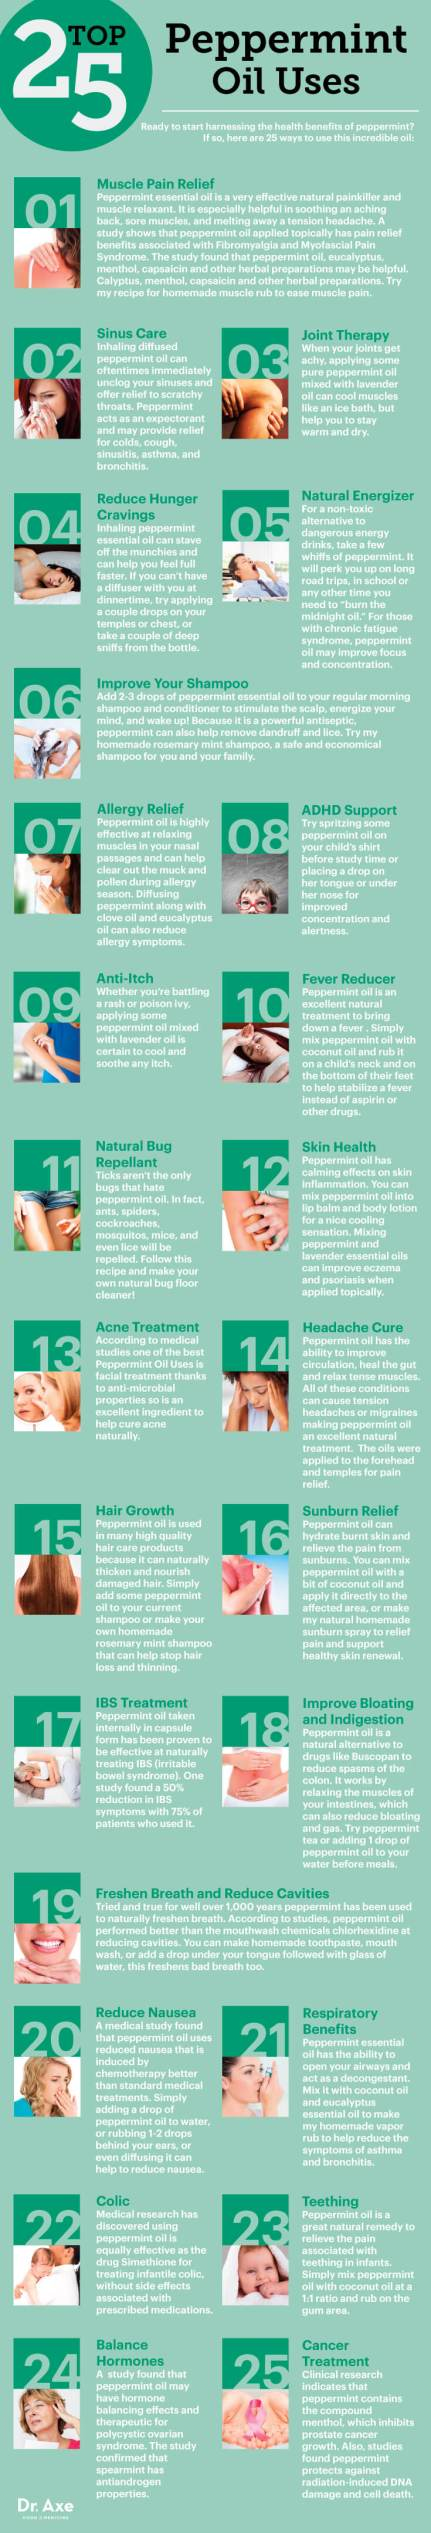 Top 25 Peppermint Oil Uses and Benefits_2